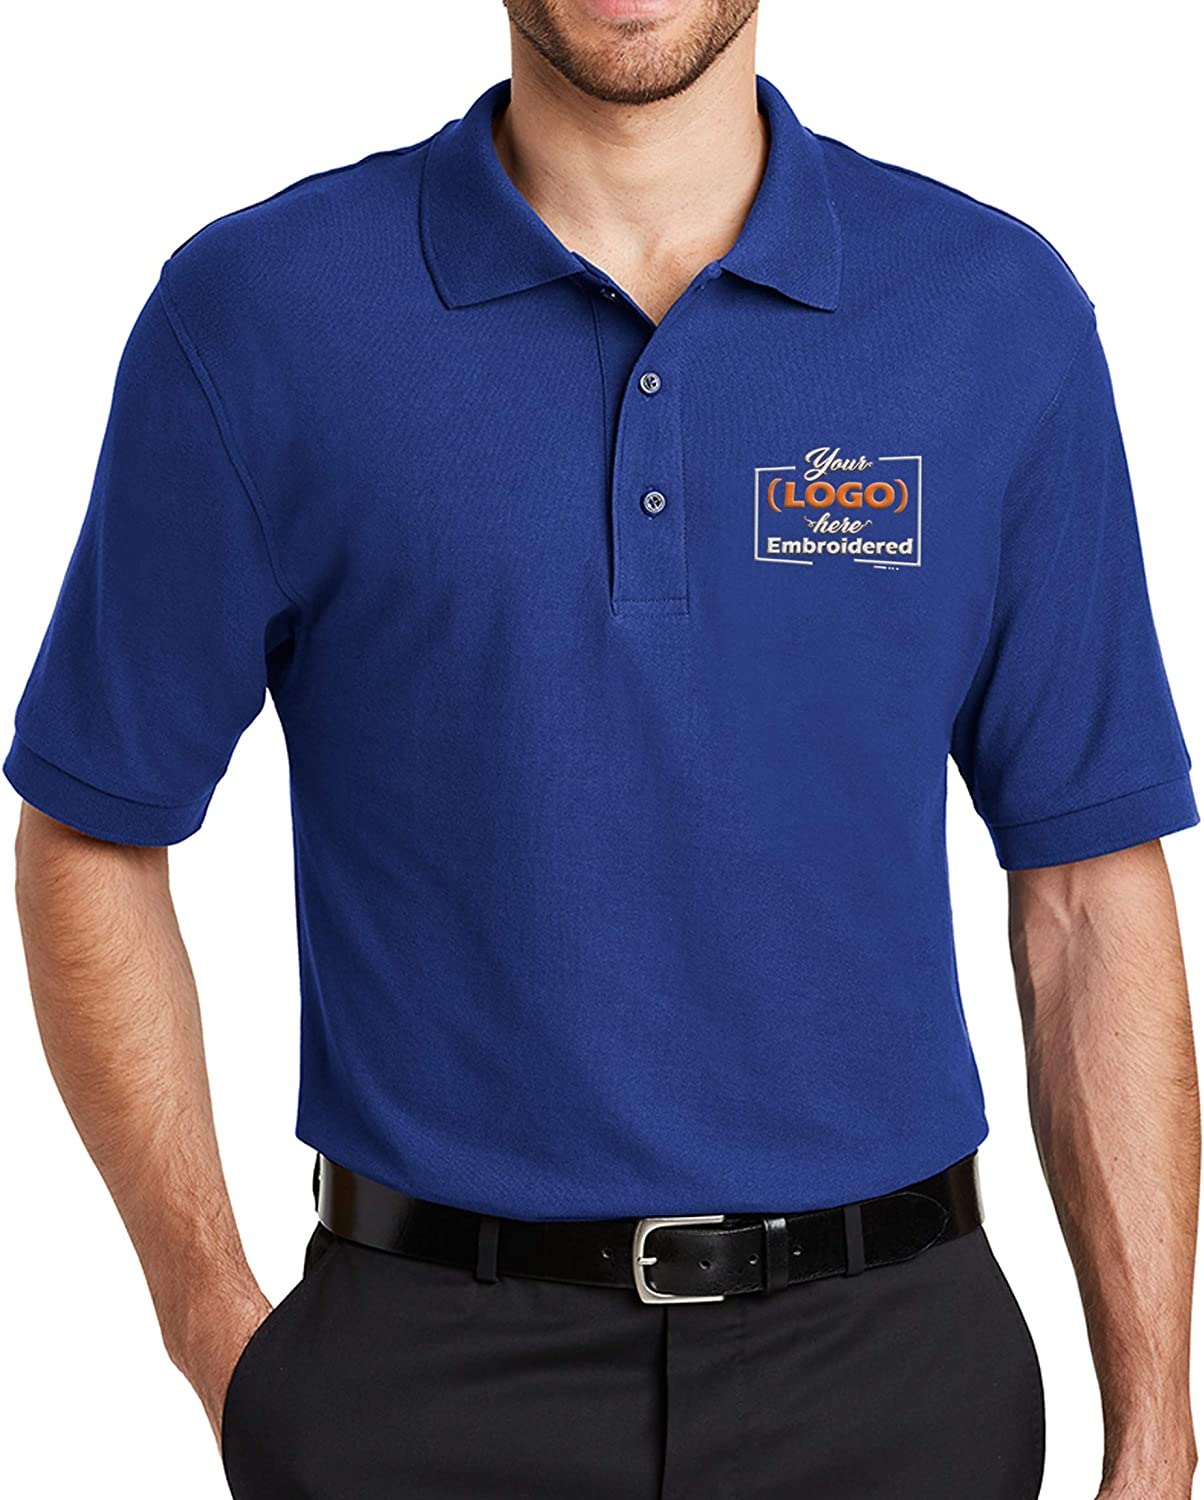 Custom Embroidered Logo Polo Shirts for Men Personalized Embroidery Company Logo